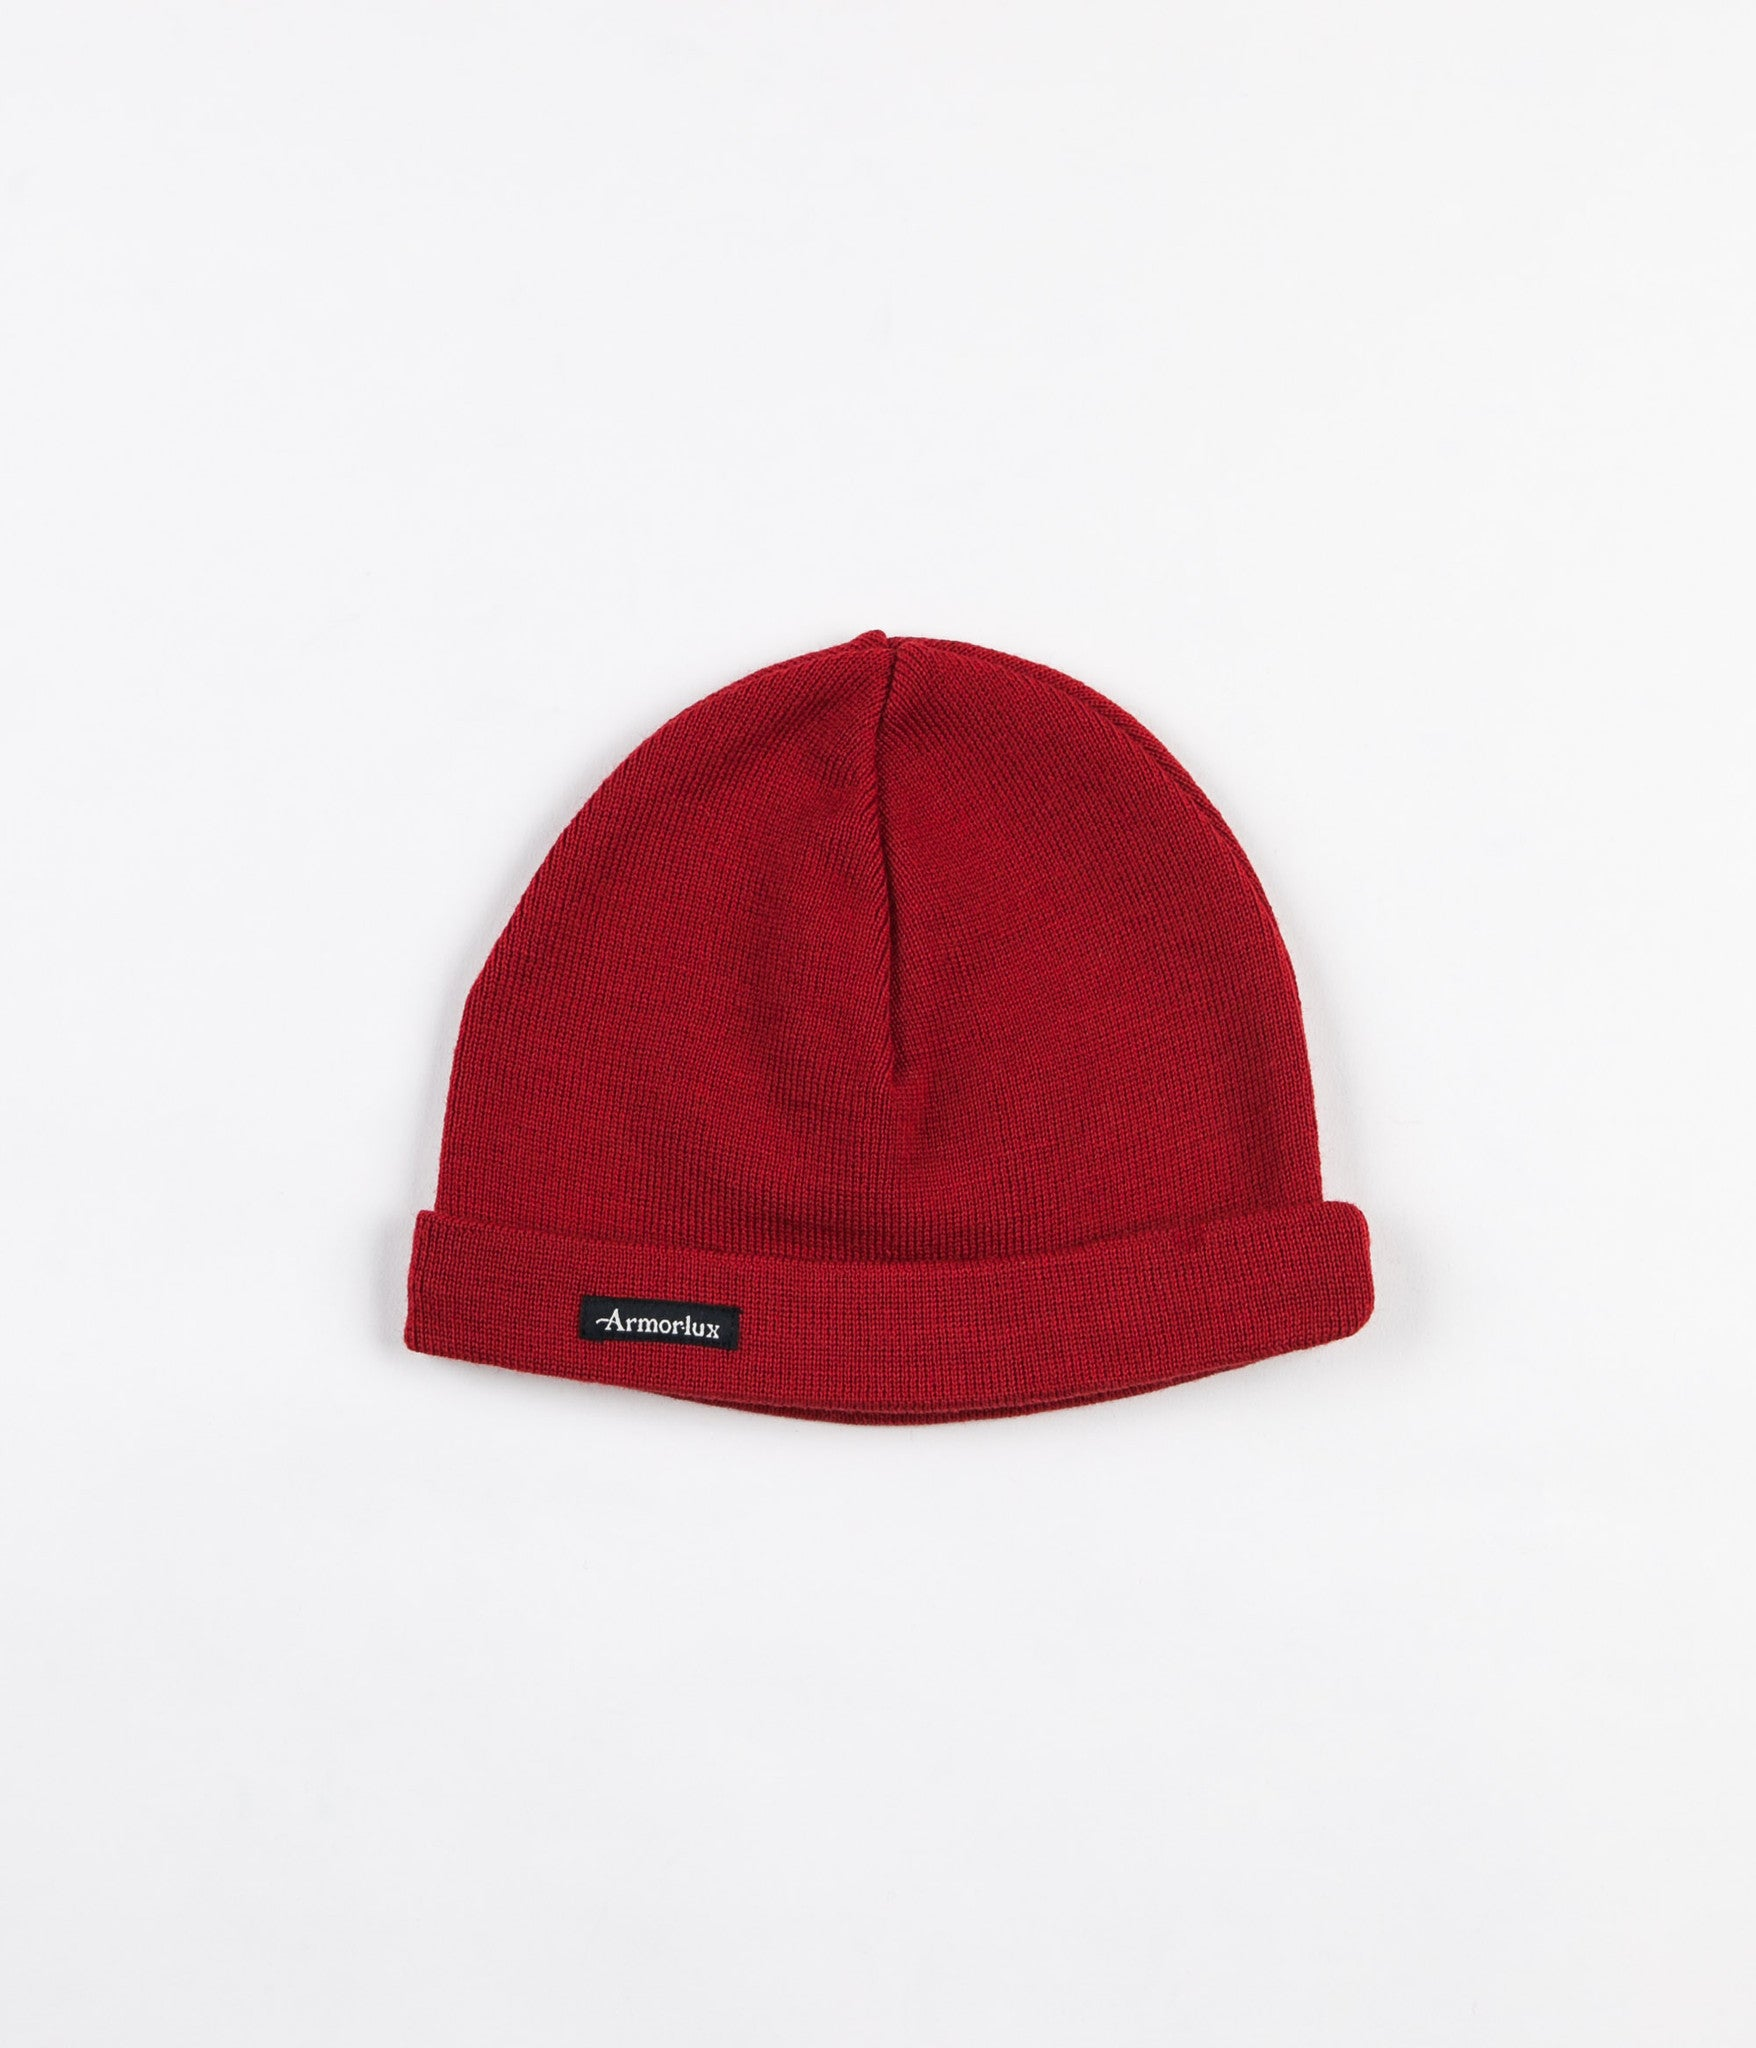 Armor Lux Plain Fisherman Beanie - Red Pepper